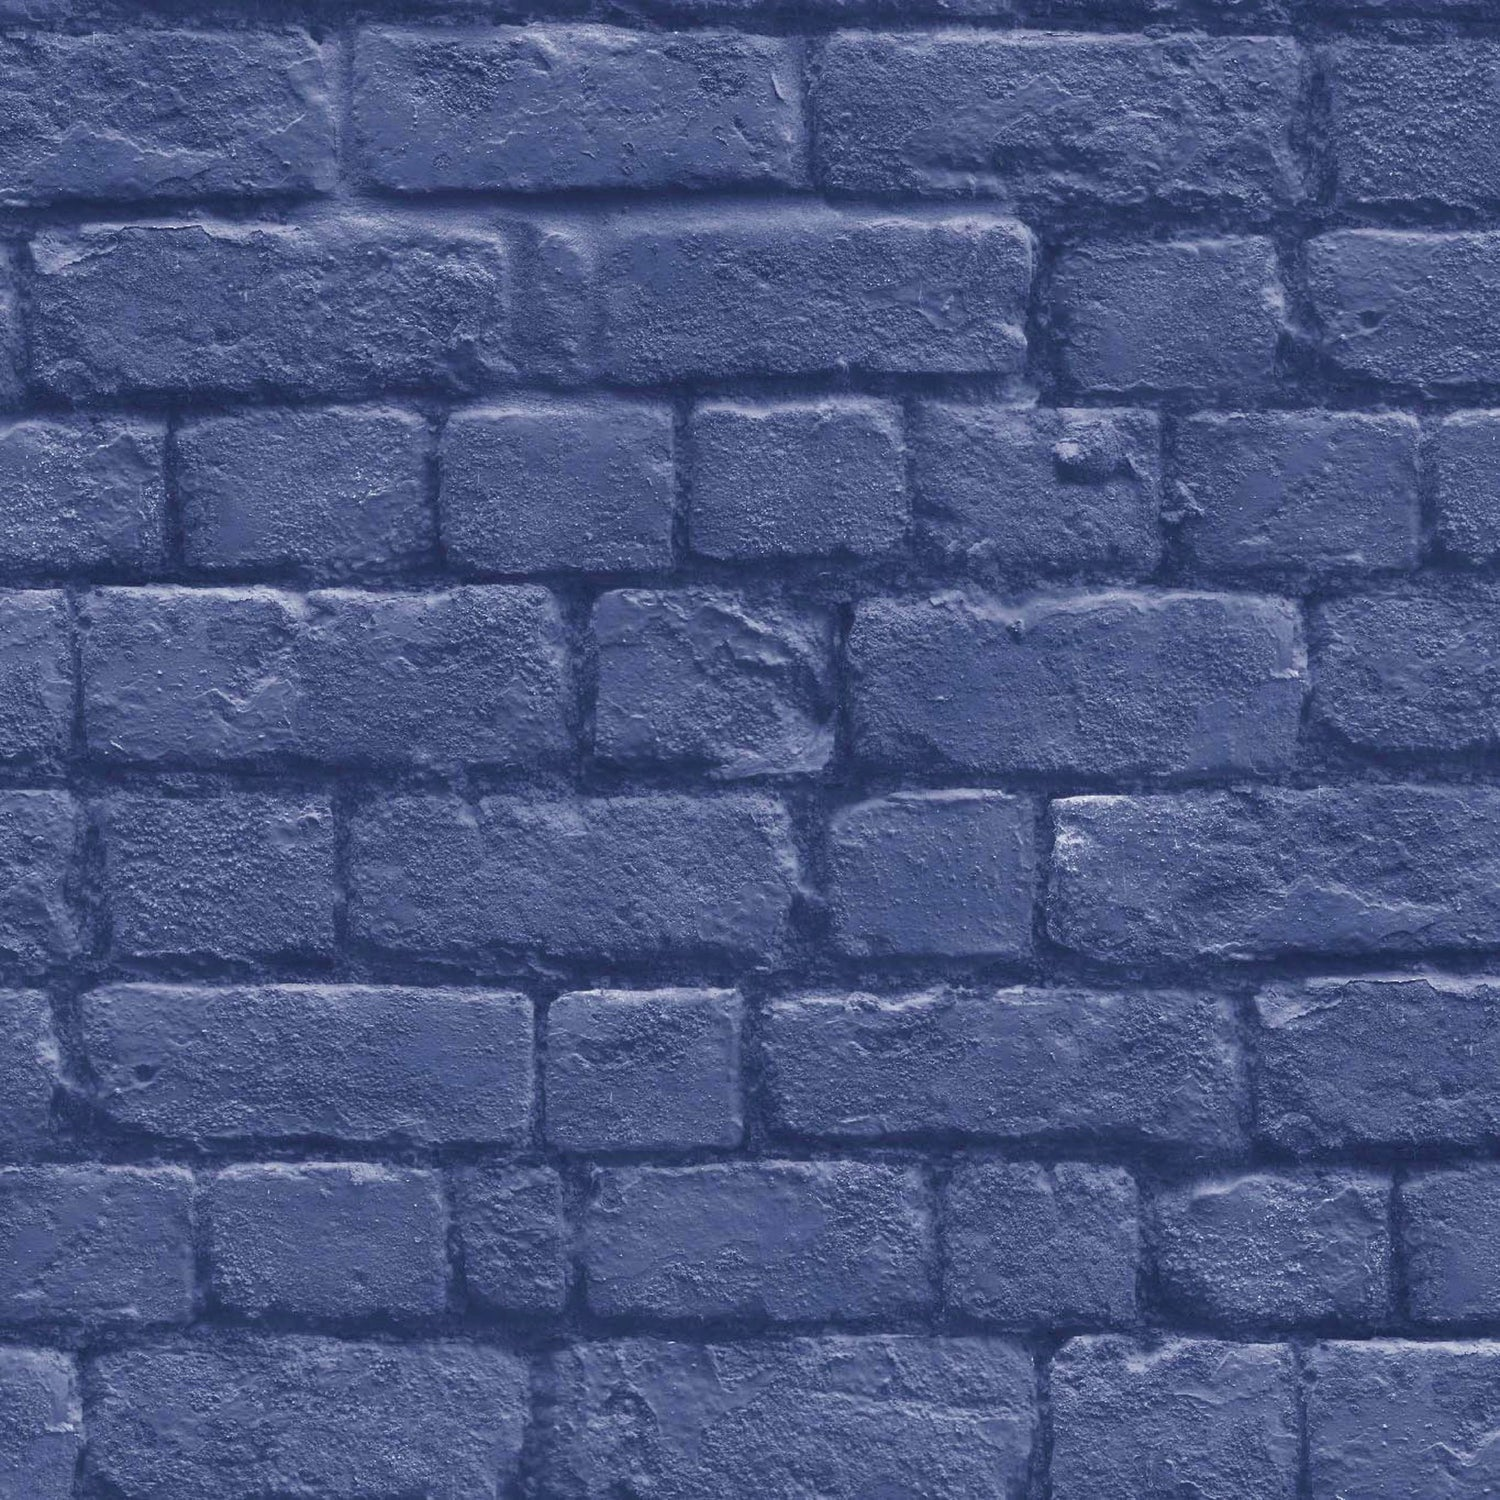 Realistic Dark Blue Brick Wallpaper By Woodchip Magnolia